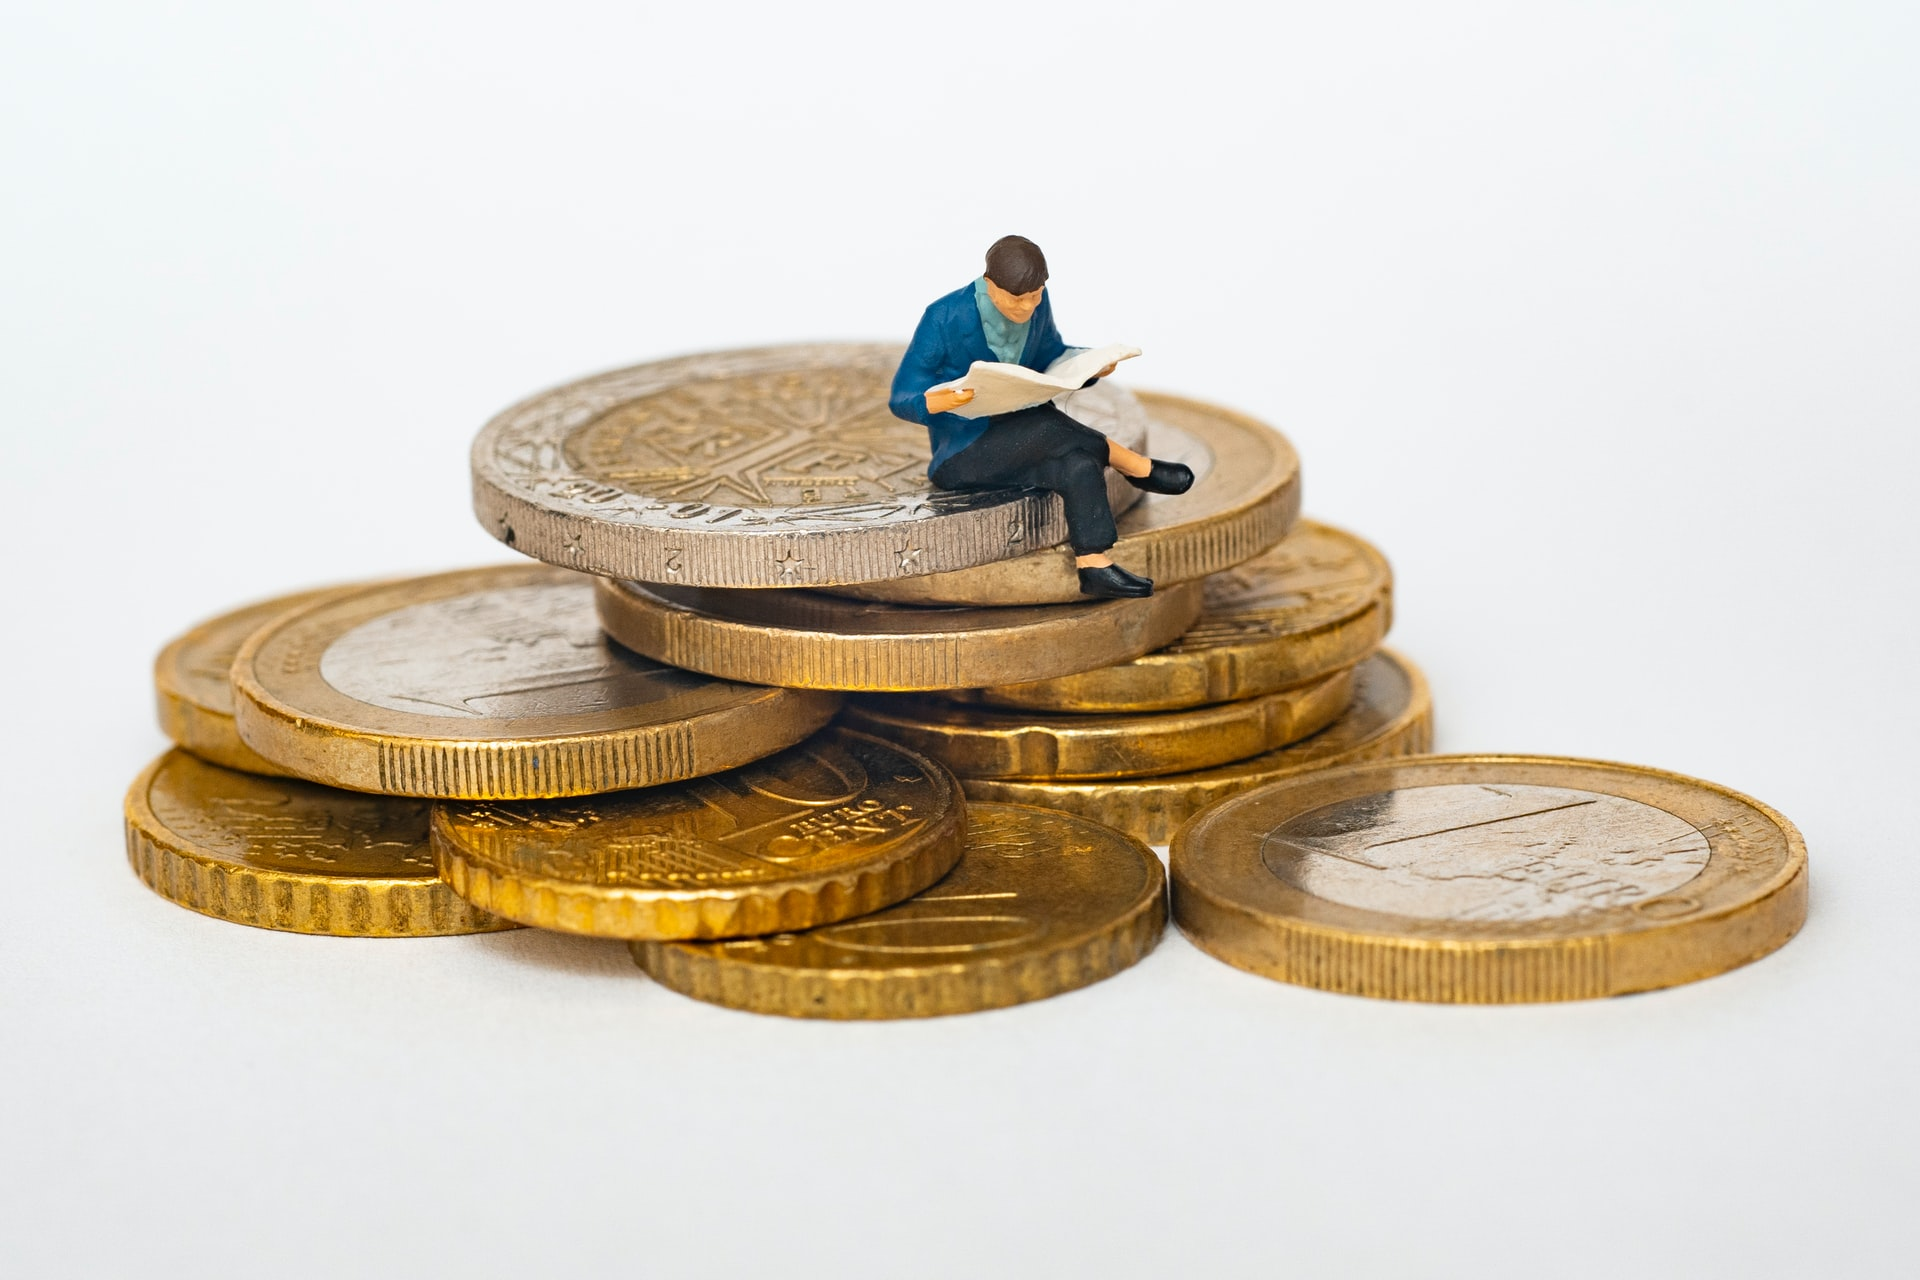 Man sitting on a pile of coins, reading a newspaper.